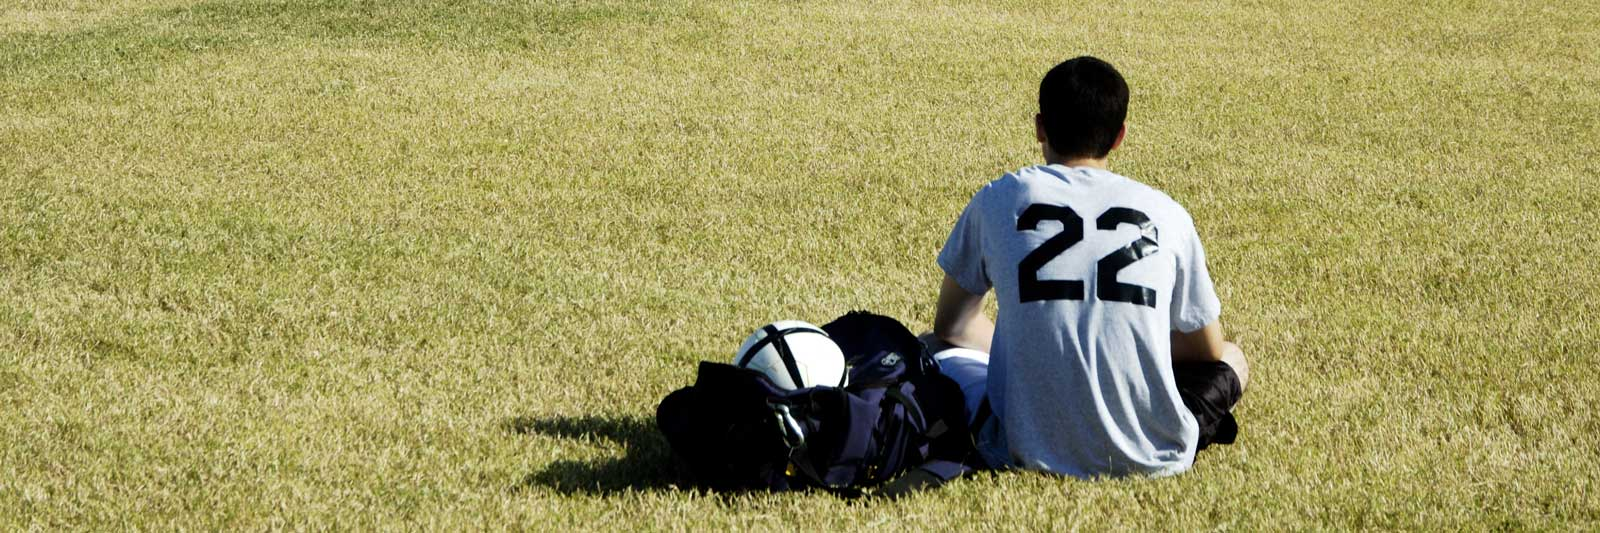 New Video Promotes Concussion Safety in Sport